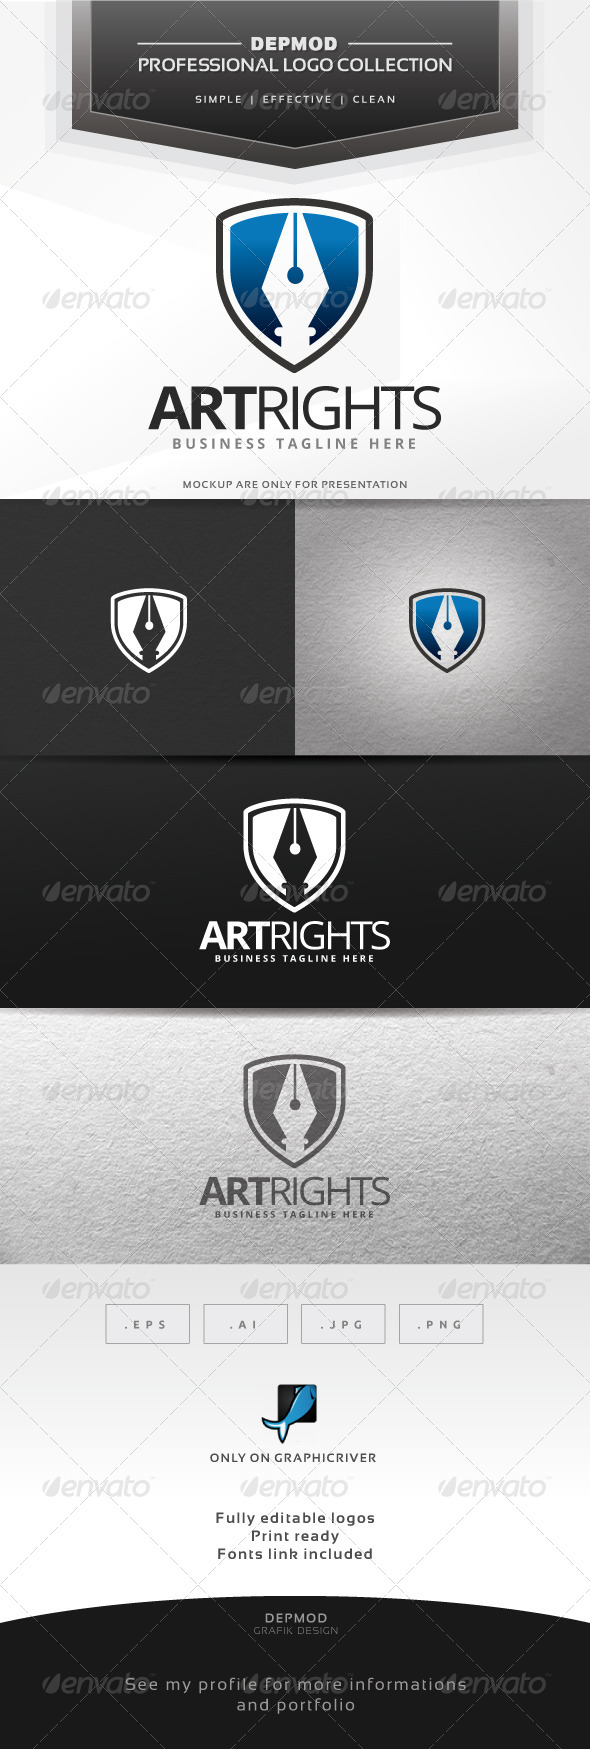 Art Rights Logo - Symbols Logo Templates